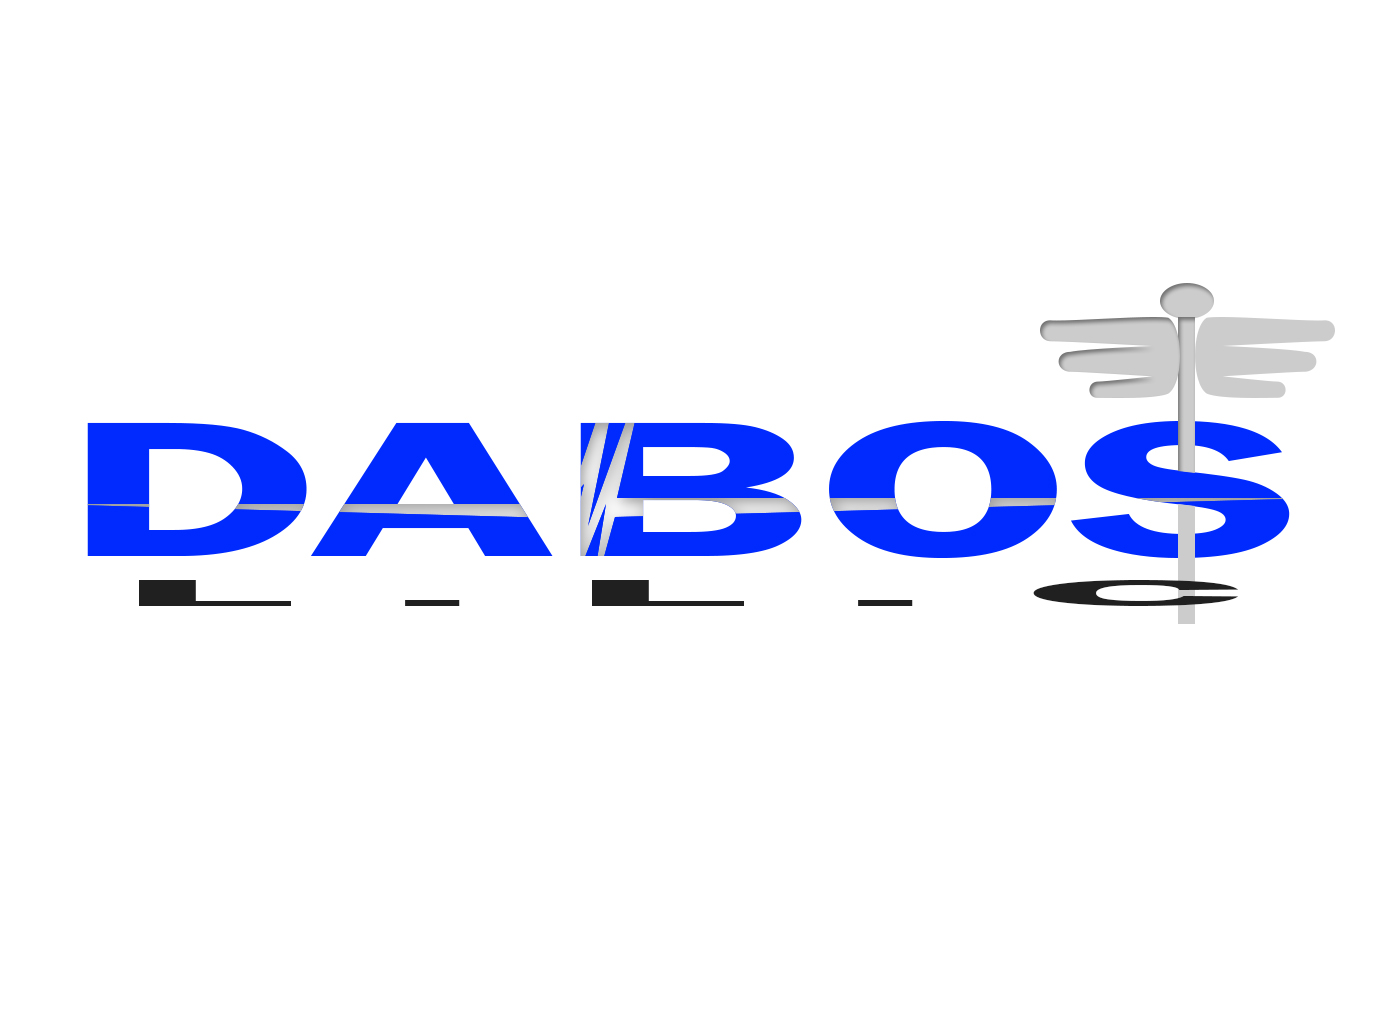 Logo Design by drunkman - Entry No. 151 in the Logo Design Contest Imaginative Logo Design for DABOS, Limited Liability Company.